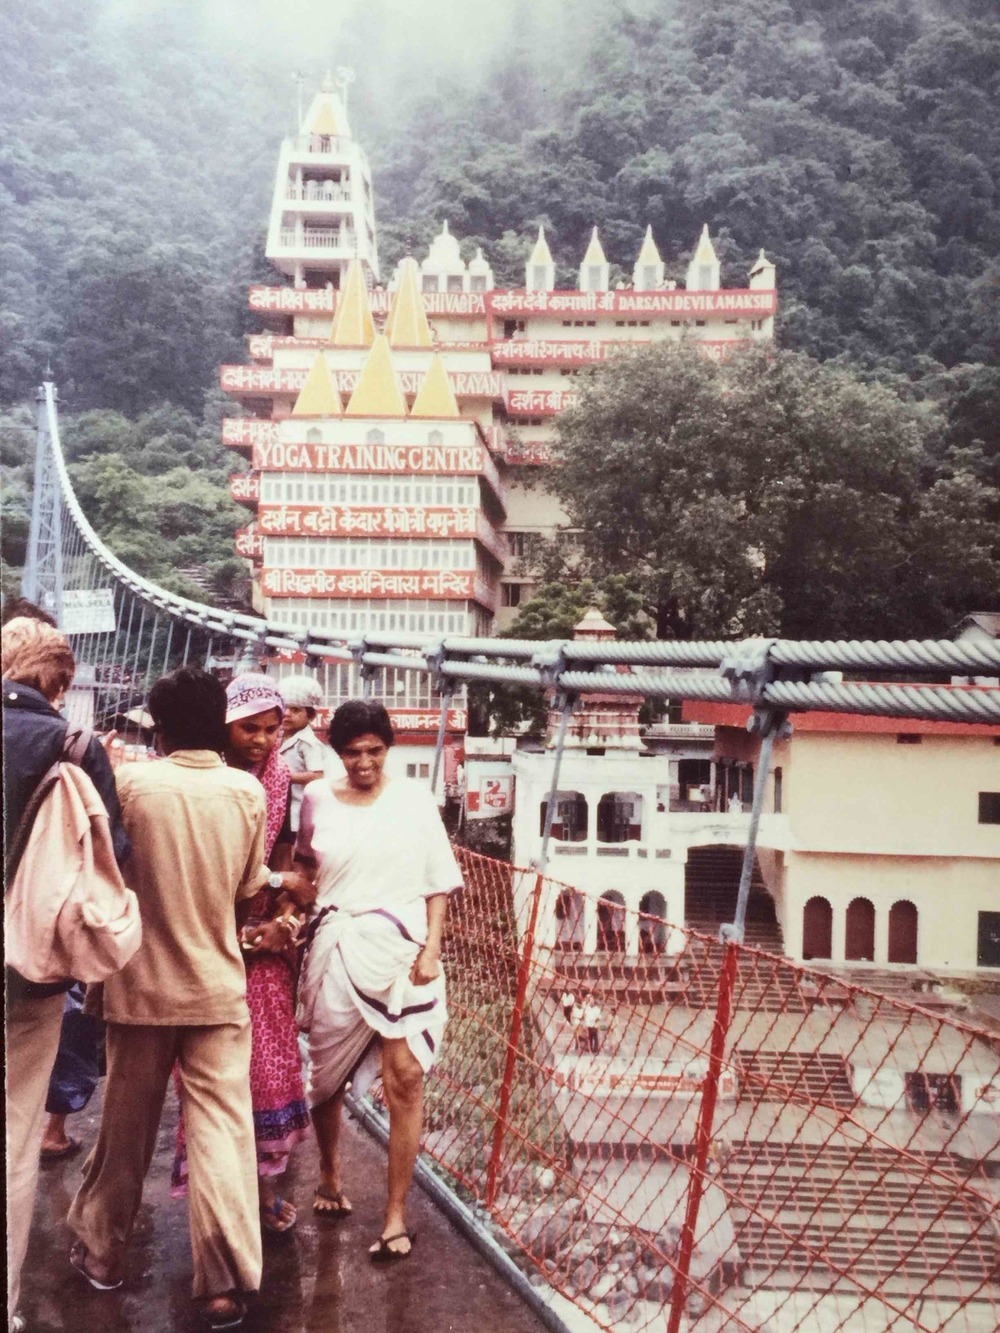 Crossing a foot bridge over the Ganges, Rishikesh, India, 1980.